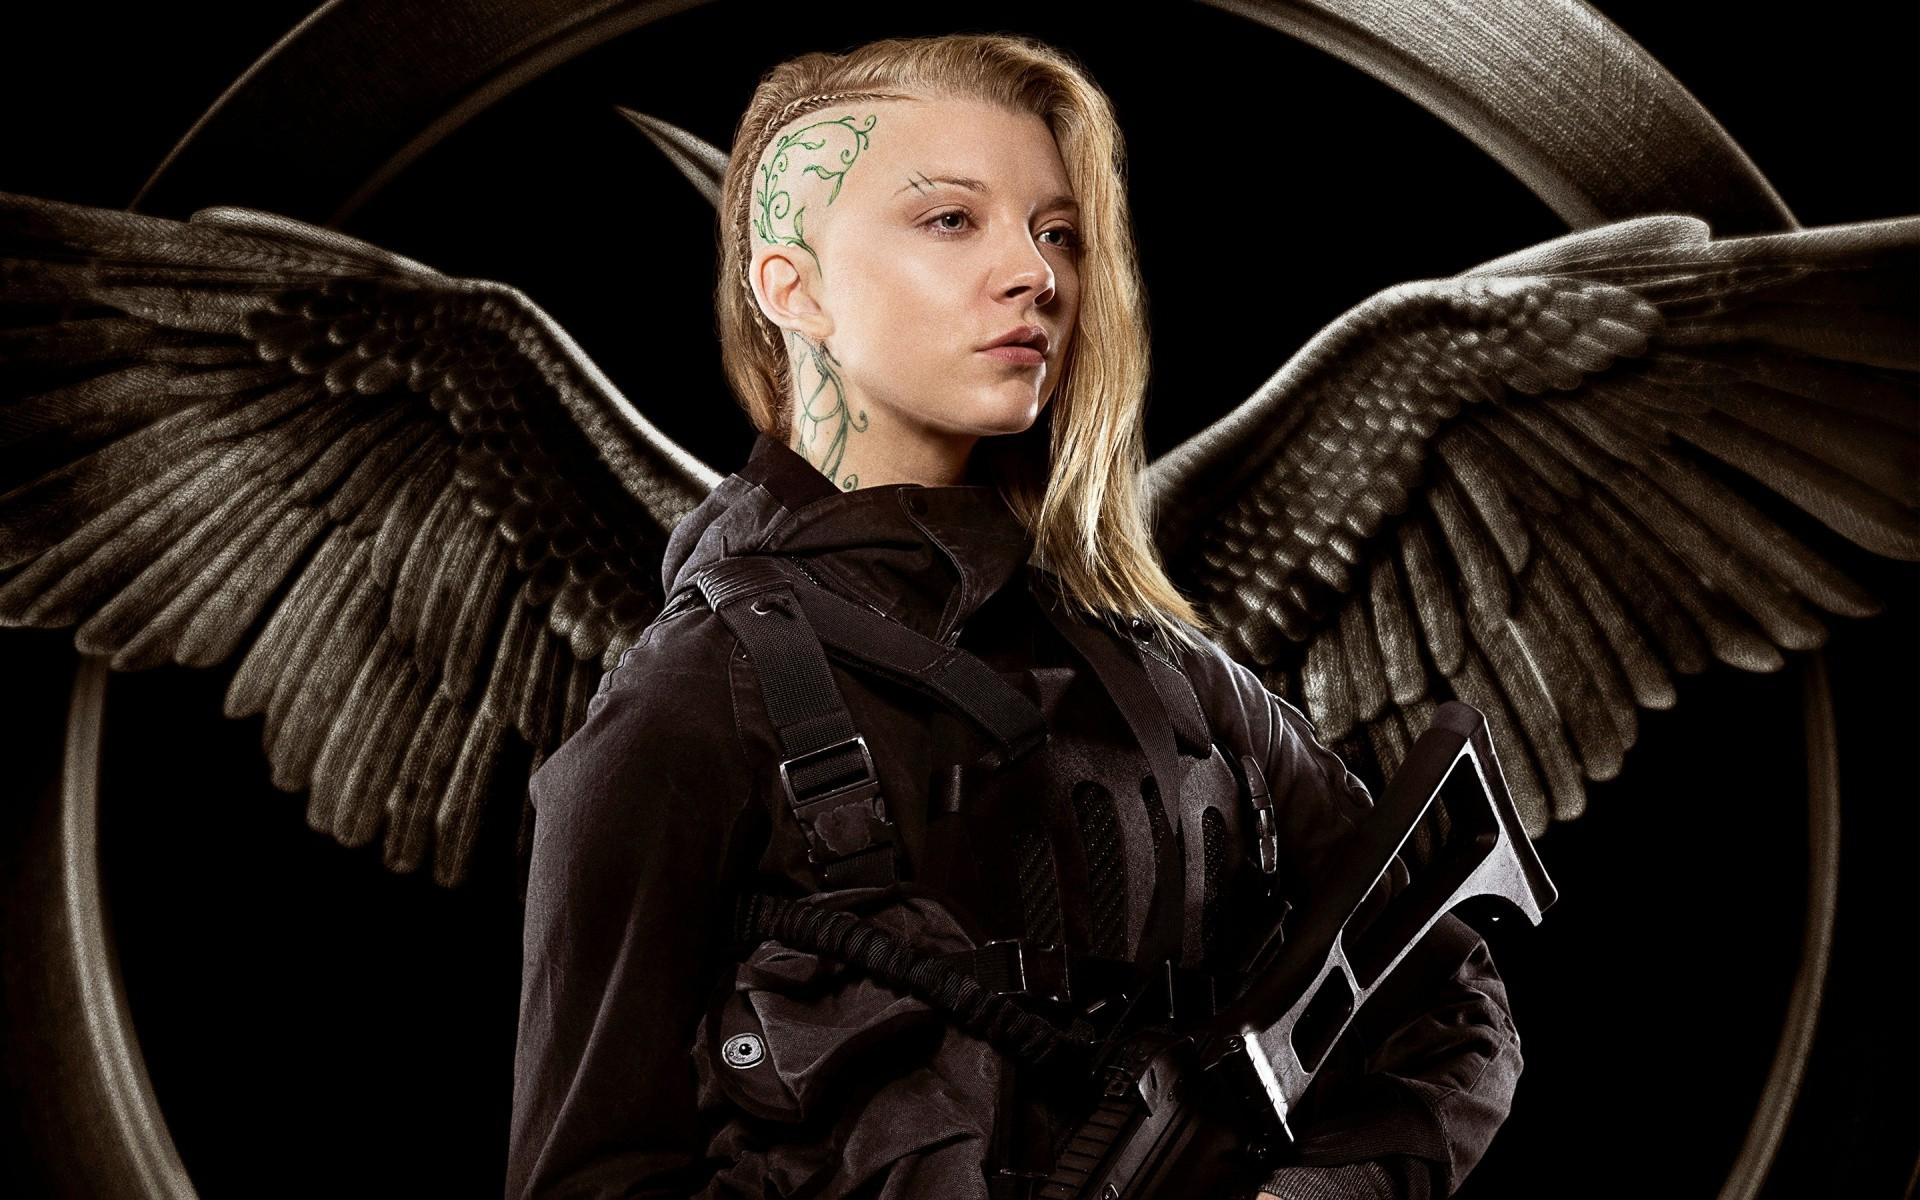 Wallpaper 3d Espada Hunger Games Natalie Dormer Movies Cressida Wallpapers